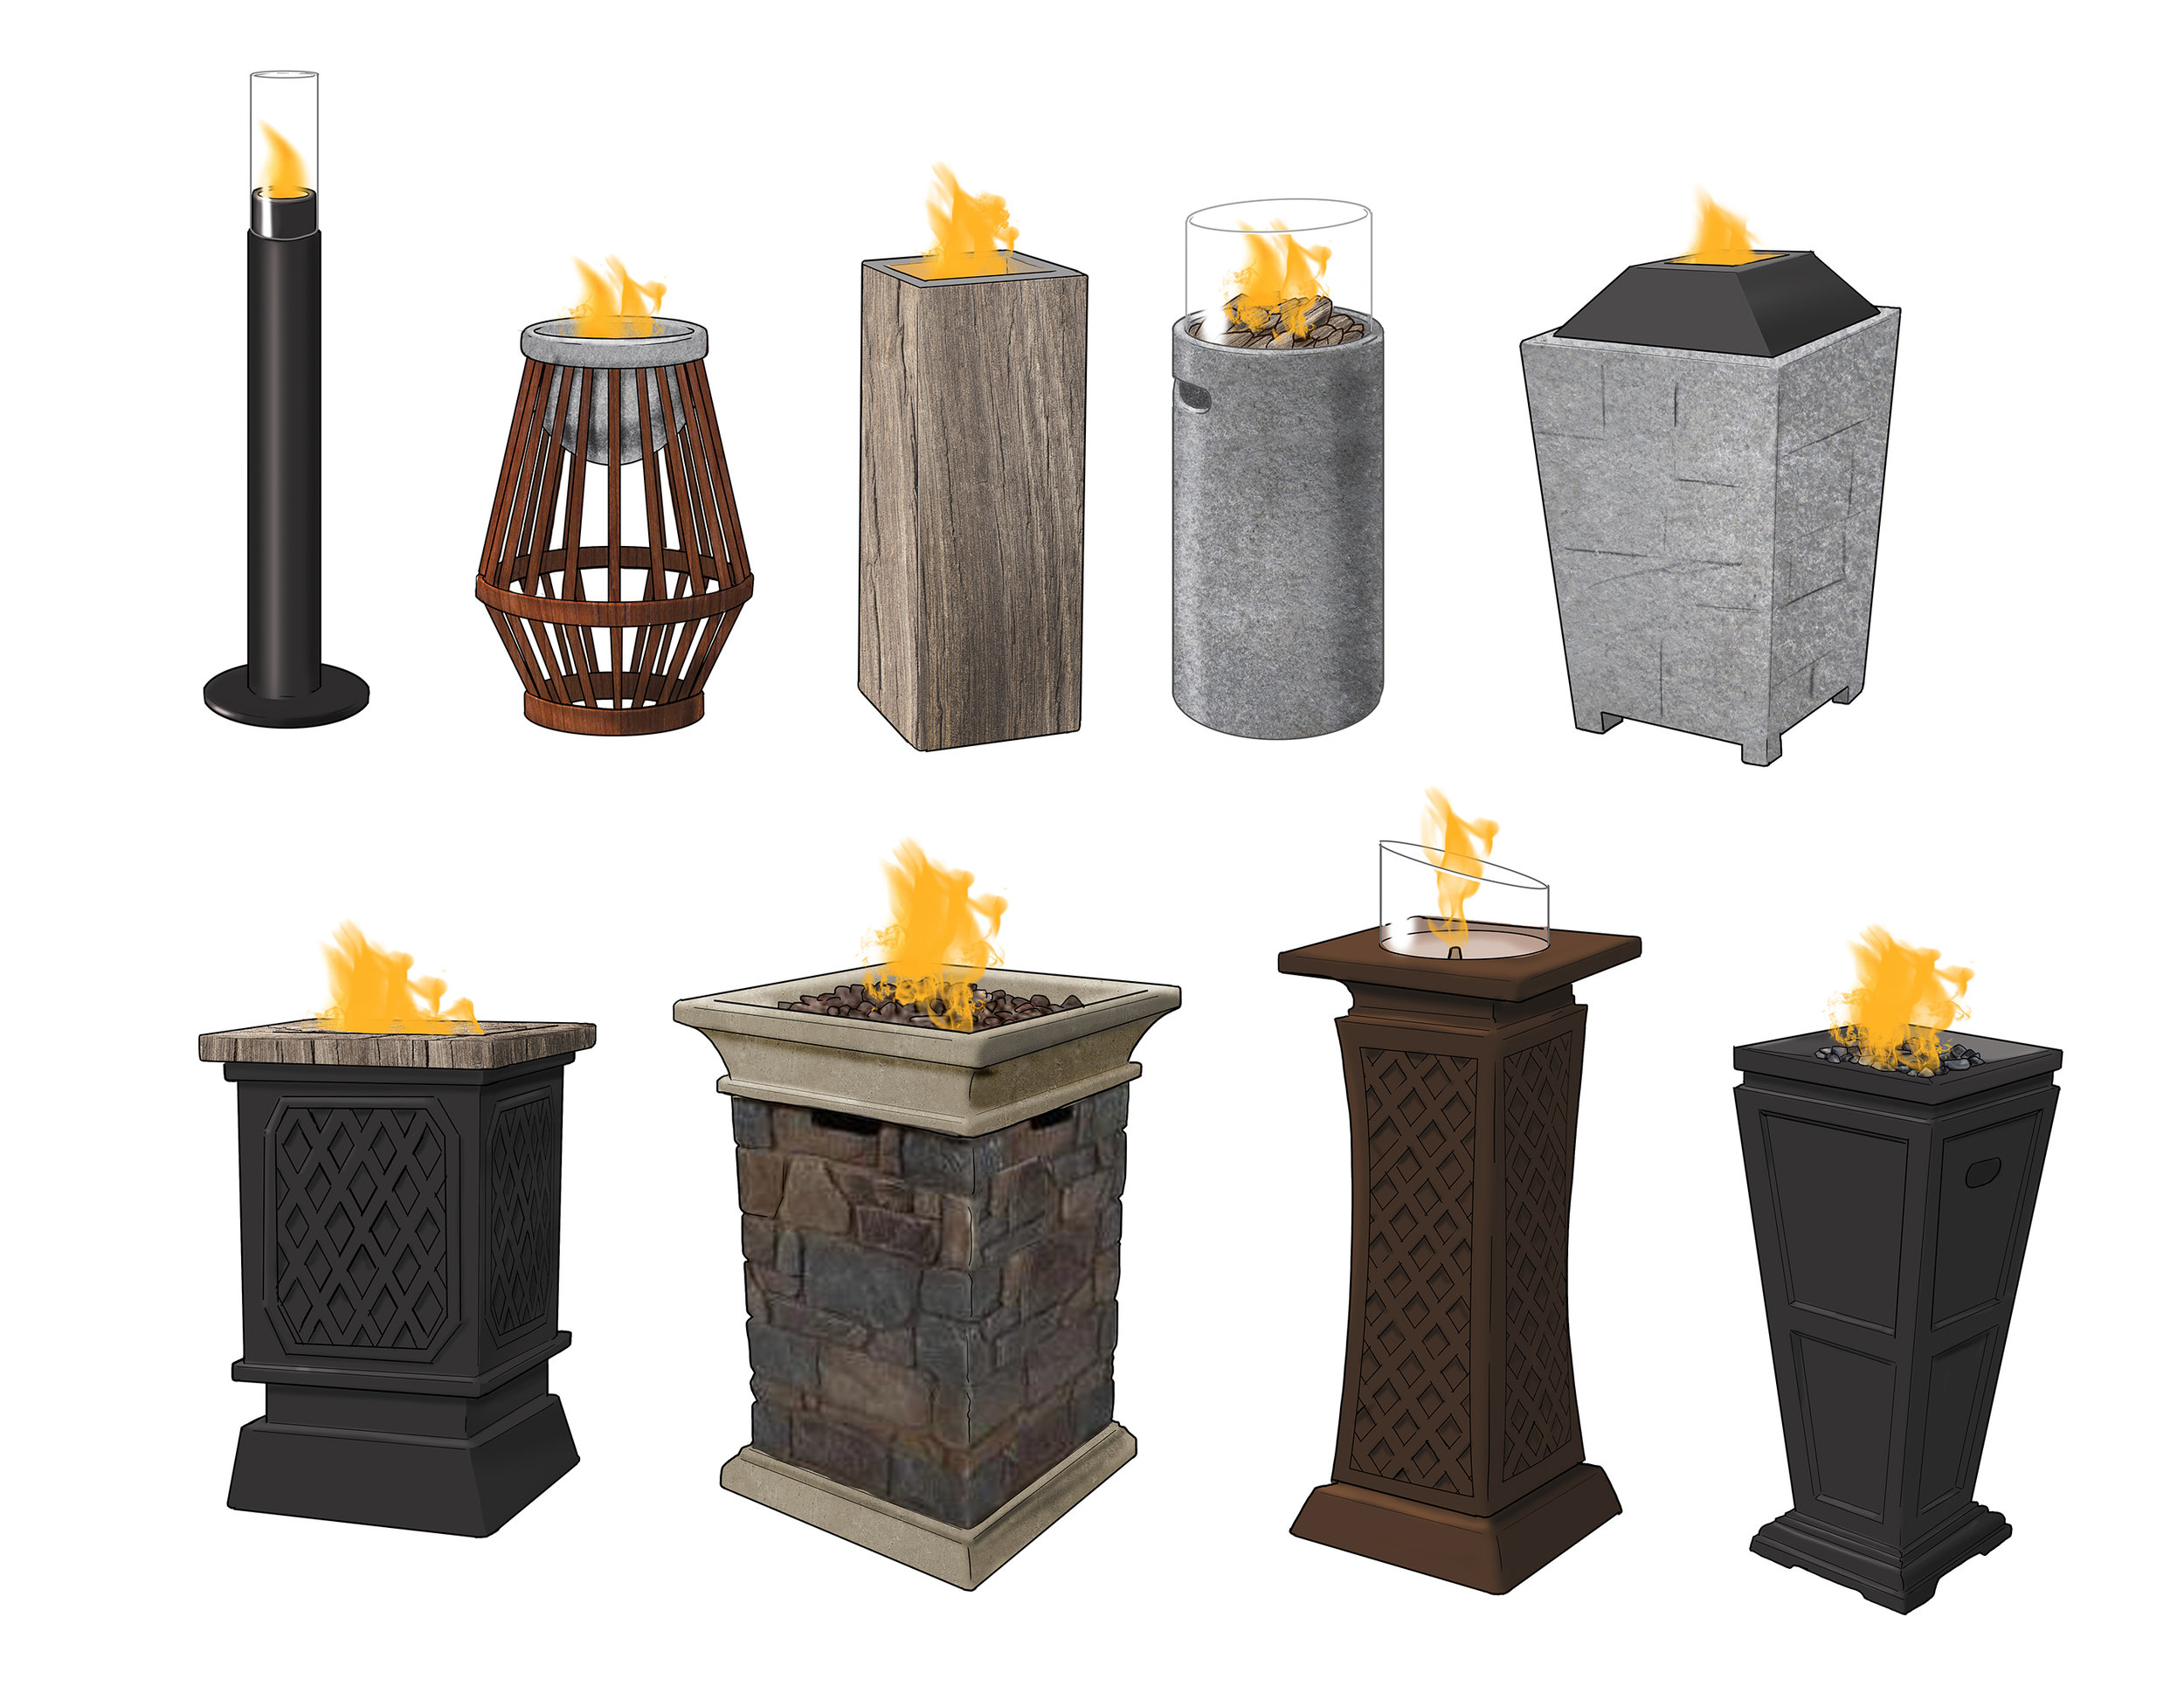 Fire Bowls and Torch Stands